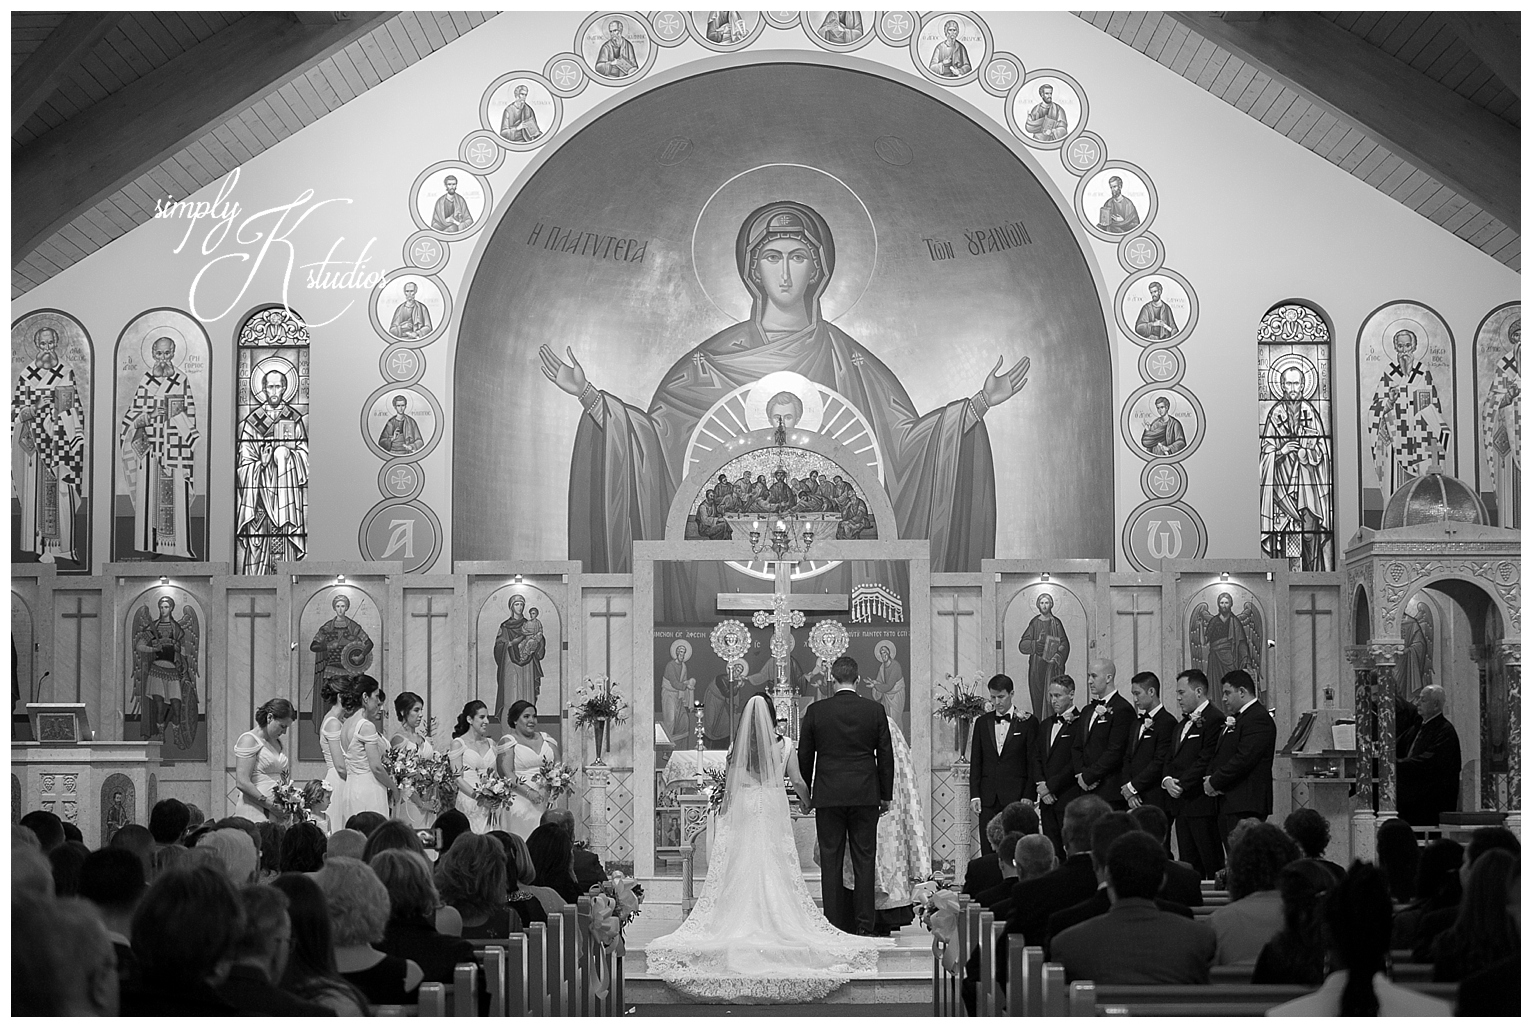 Wedding Ceremony in a Church.jpg